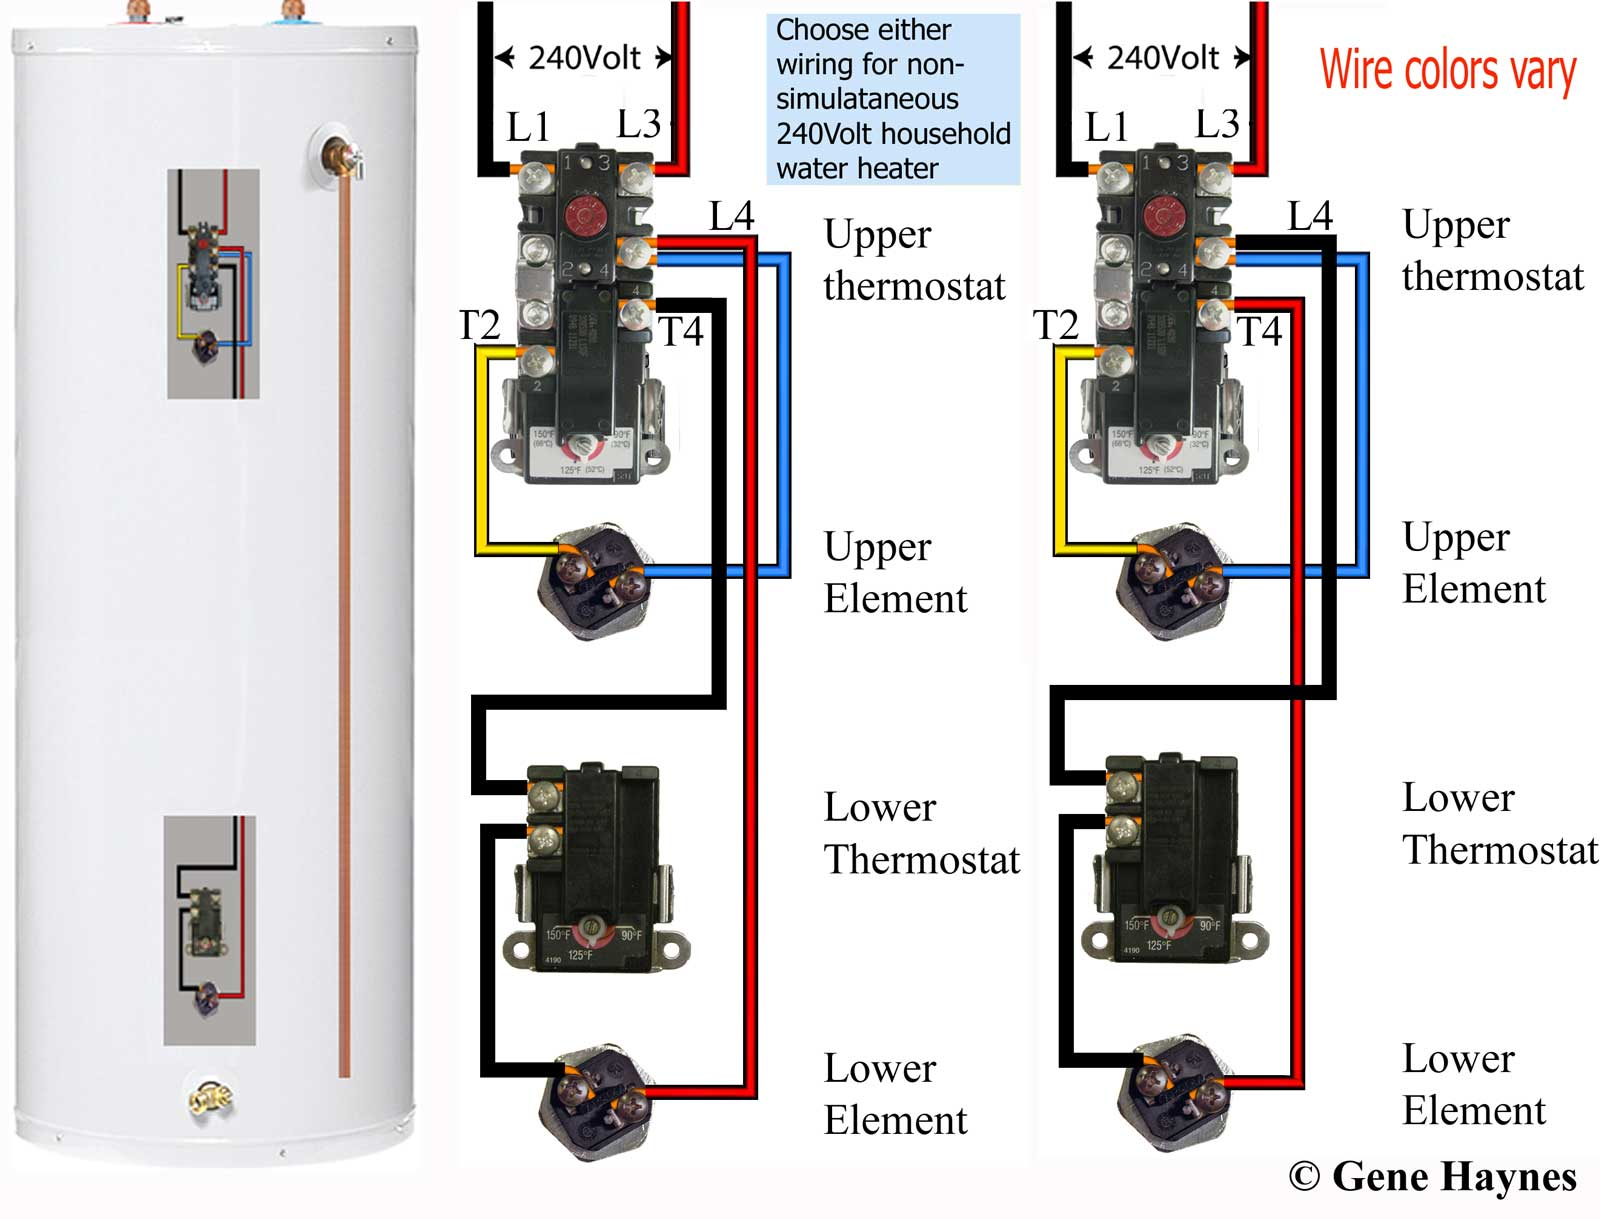 how to troubleshoot electric water heater wiring diagram illustrated on right will not prevent cracked element it will only mask problem of cracked element on lower element and prevent cracked